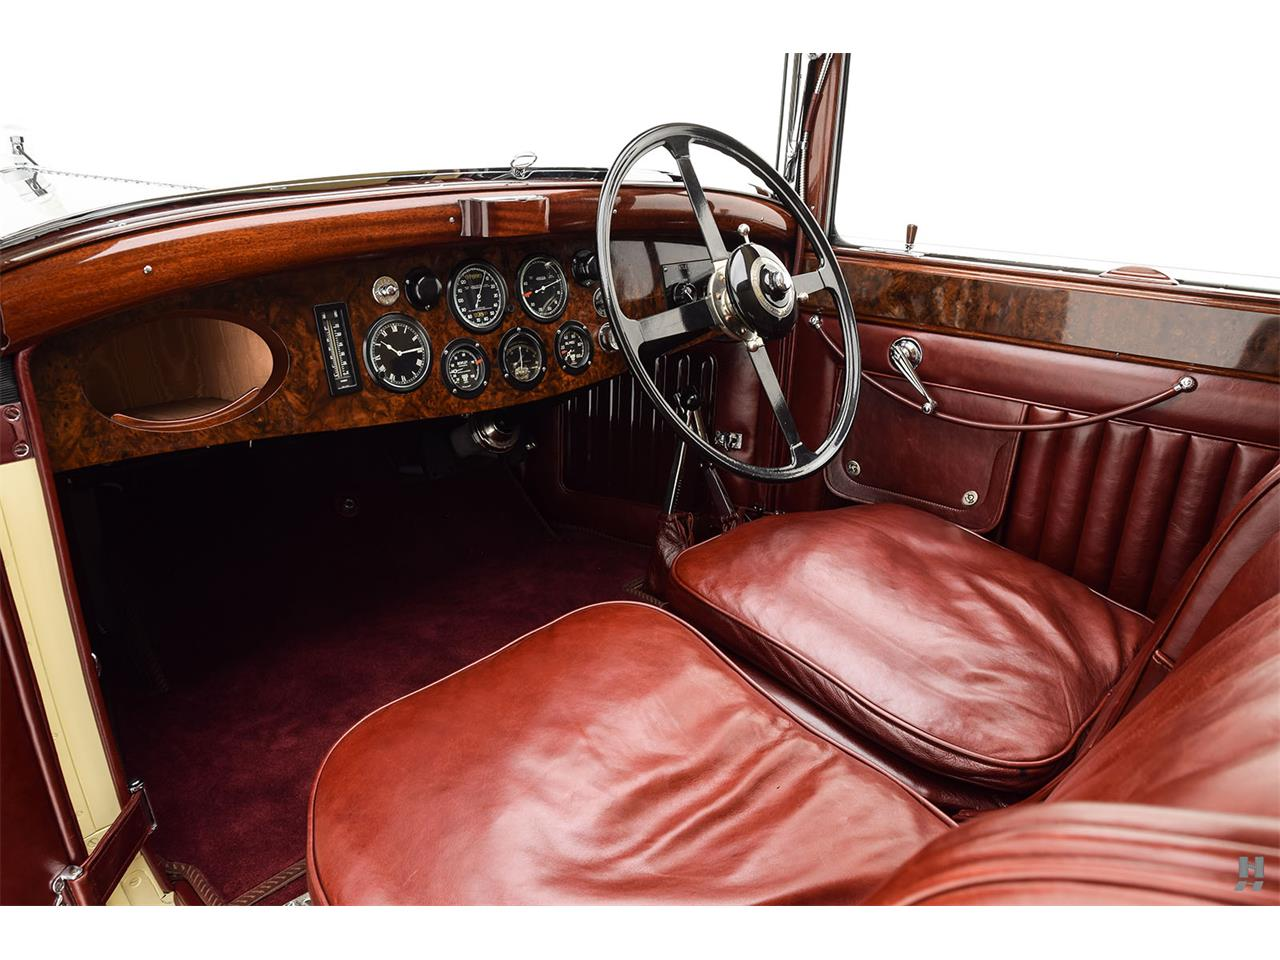 Large Picture of 1930 Speed Six Tourer - $4,250,000.00 Offered by Hyman Ltd. Classic Cars - PYOI